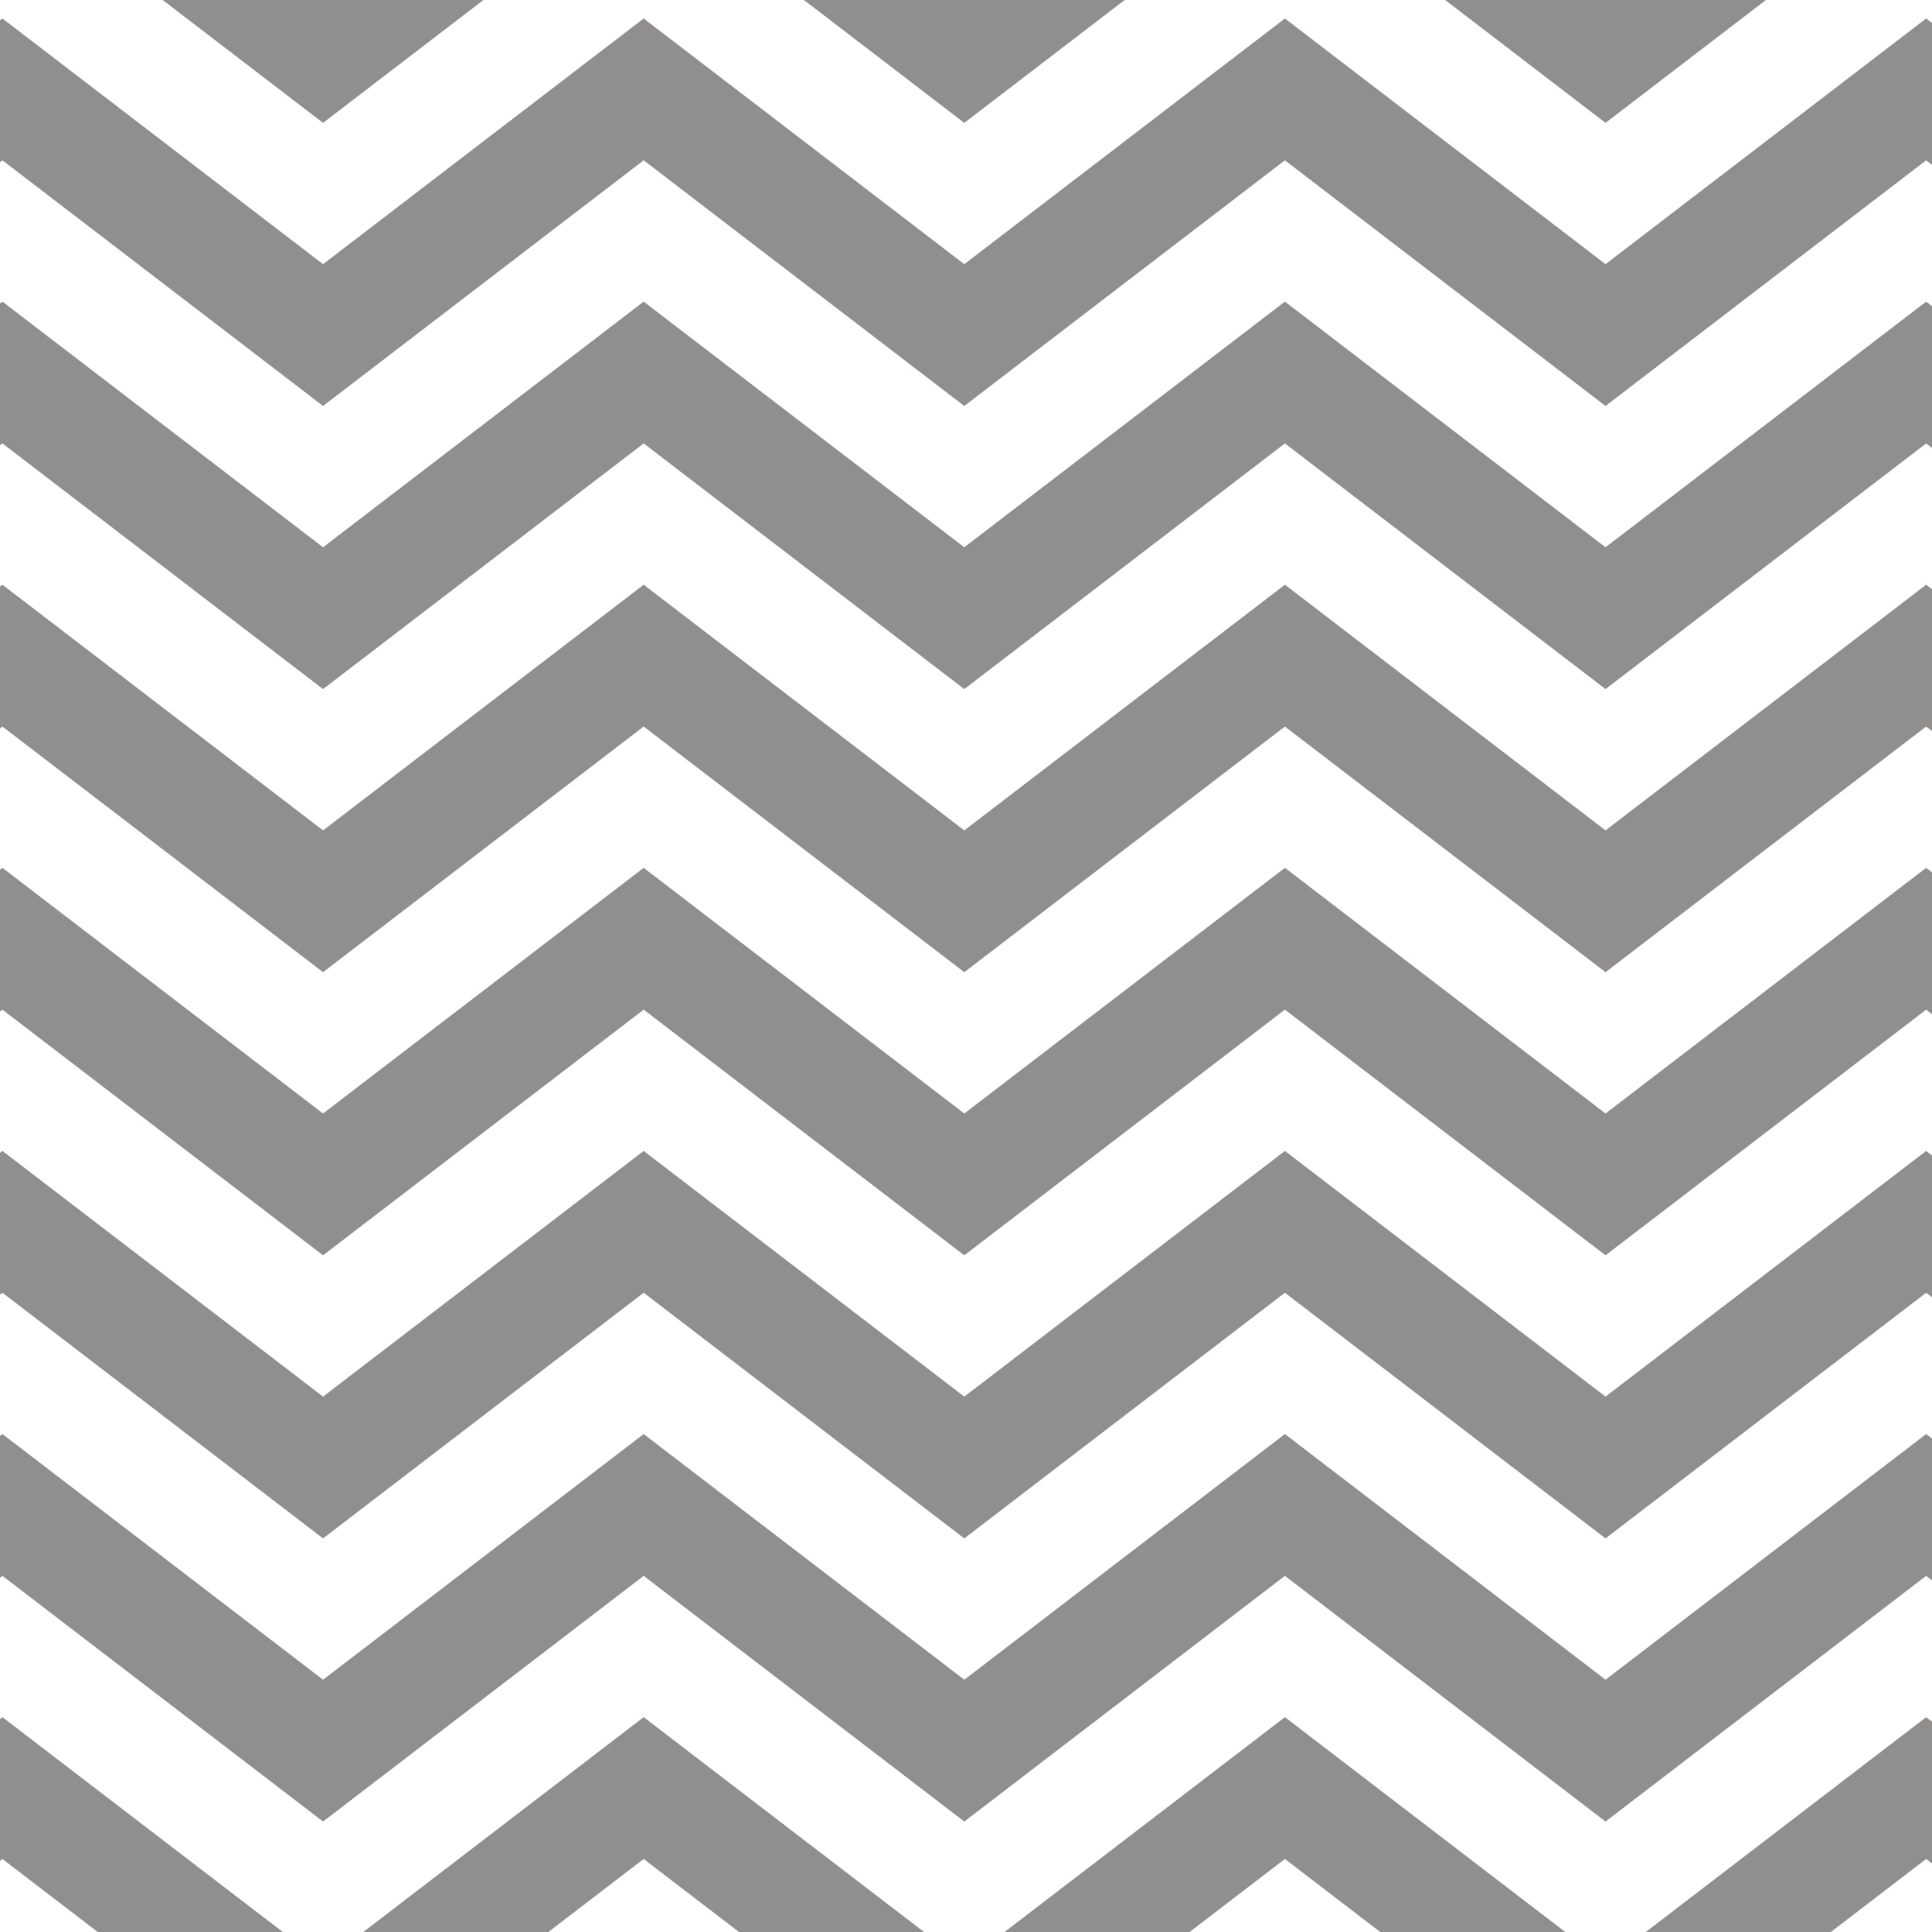 tablecloth vinyl chevron joann artistic accents blue patio furniture black metal stools glass end table high companies real wood flooring foldable outdoor side door cabinet nate